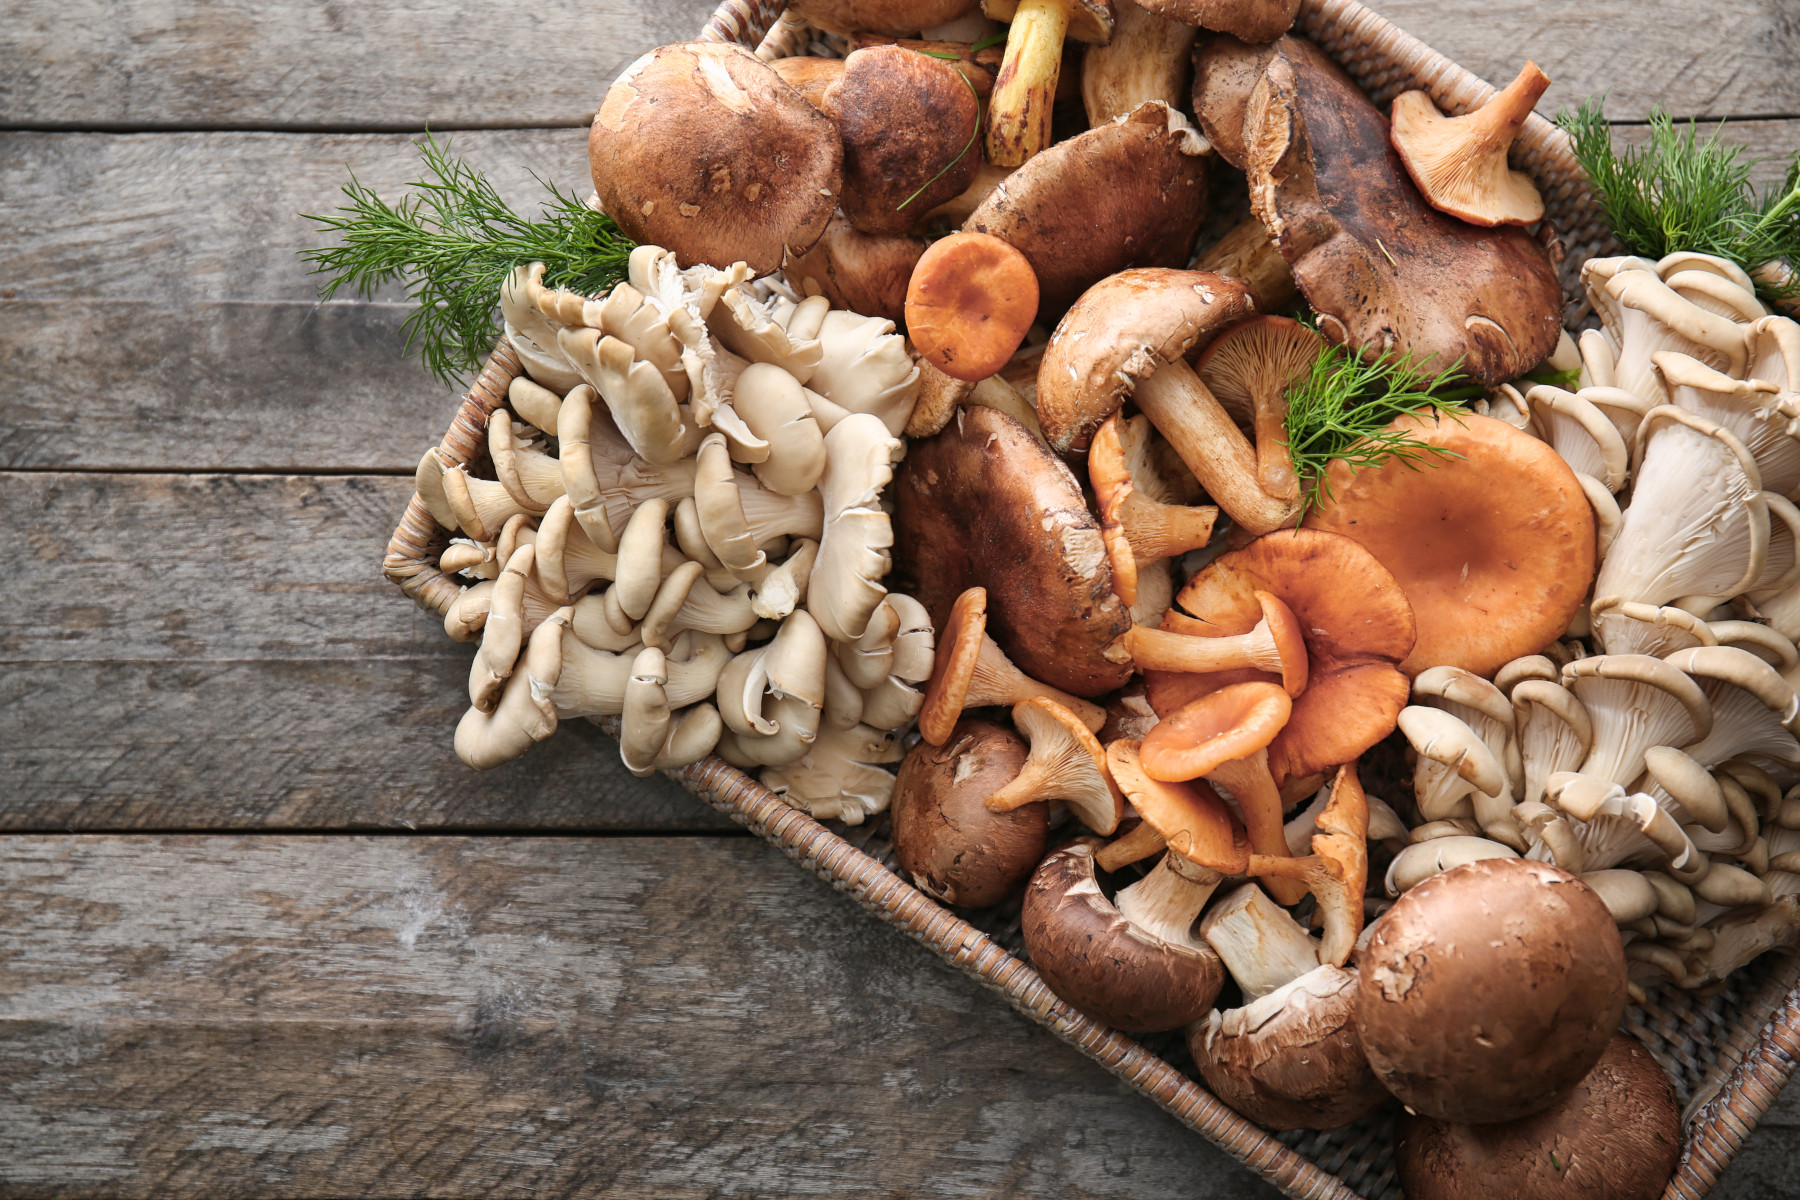 39 Different Types of Edible Mushrooms (with Pictures!) - Clean Green Simple